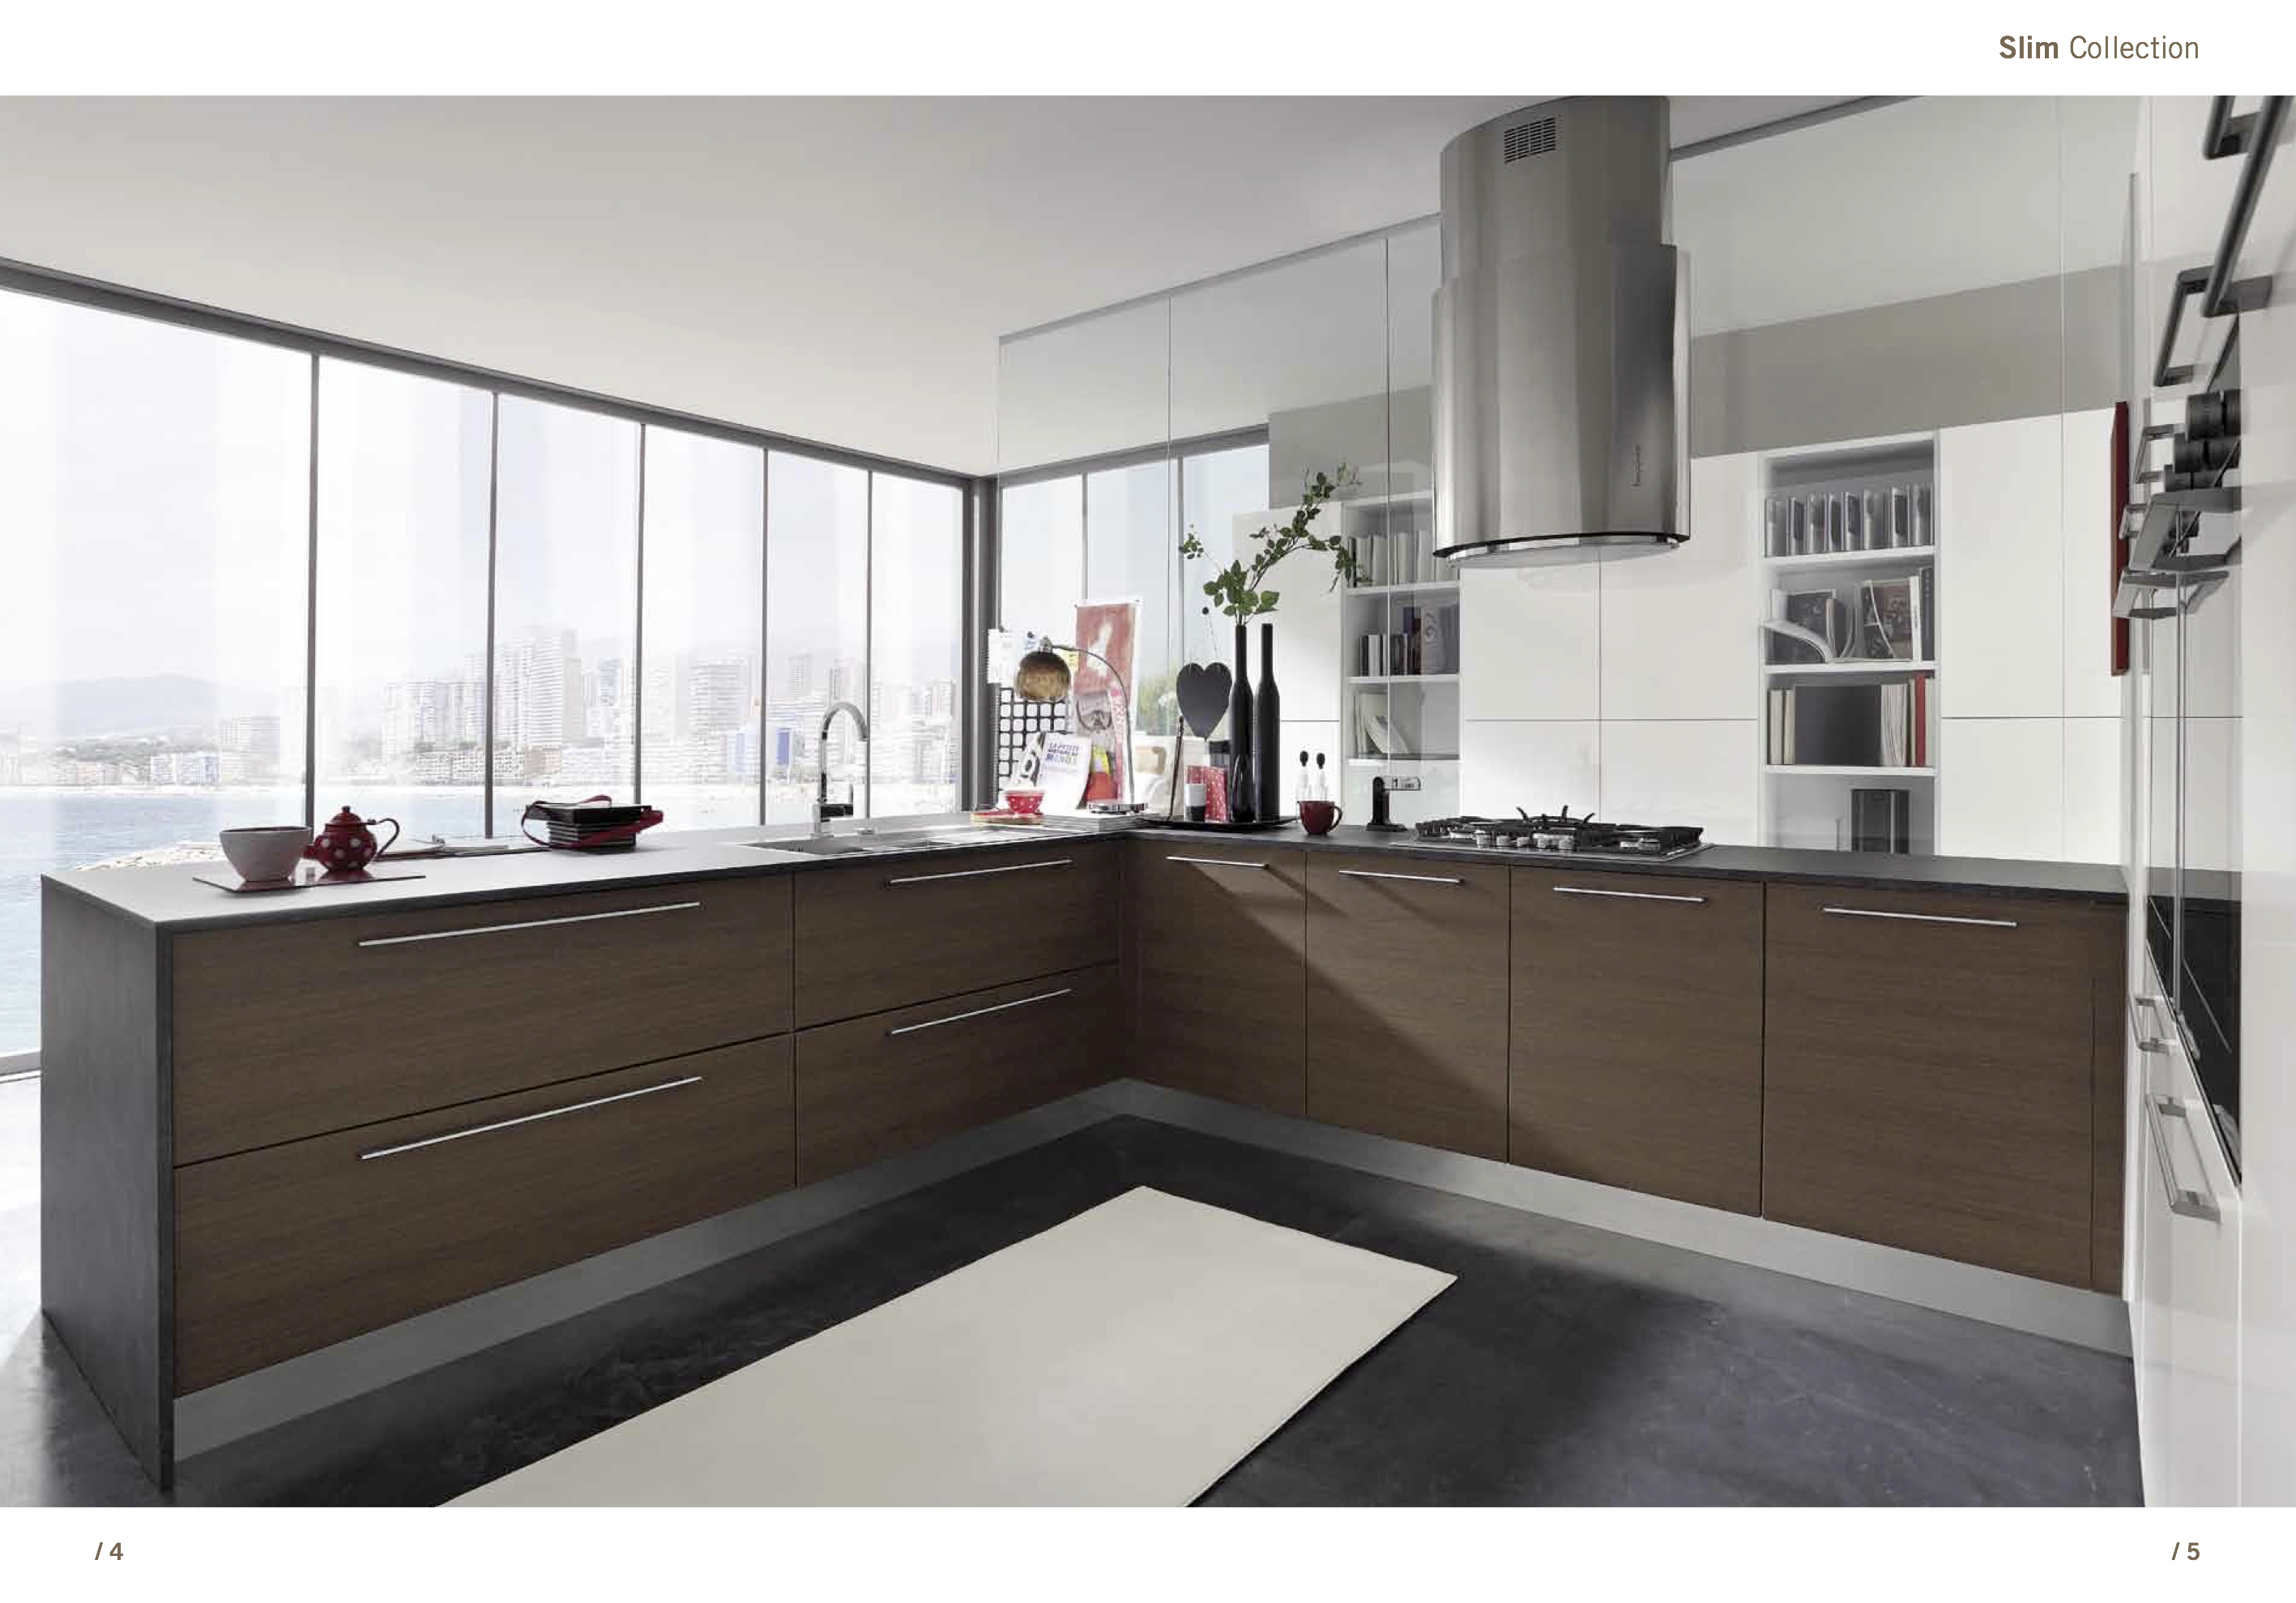 ^ Modern Kitchens Visionary Kitchens & ustom abinetry Kitchen ...